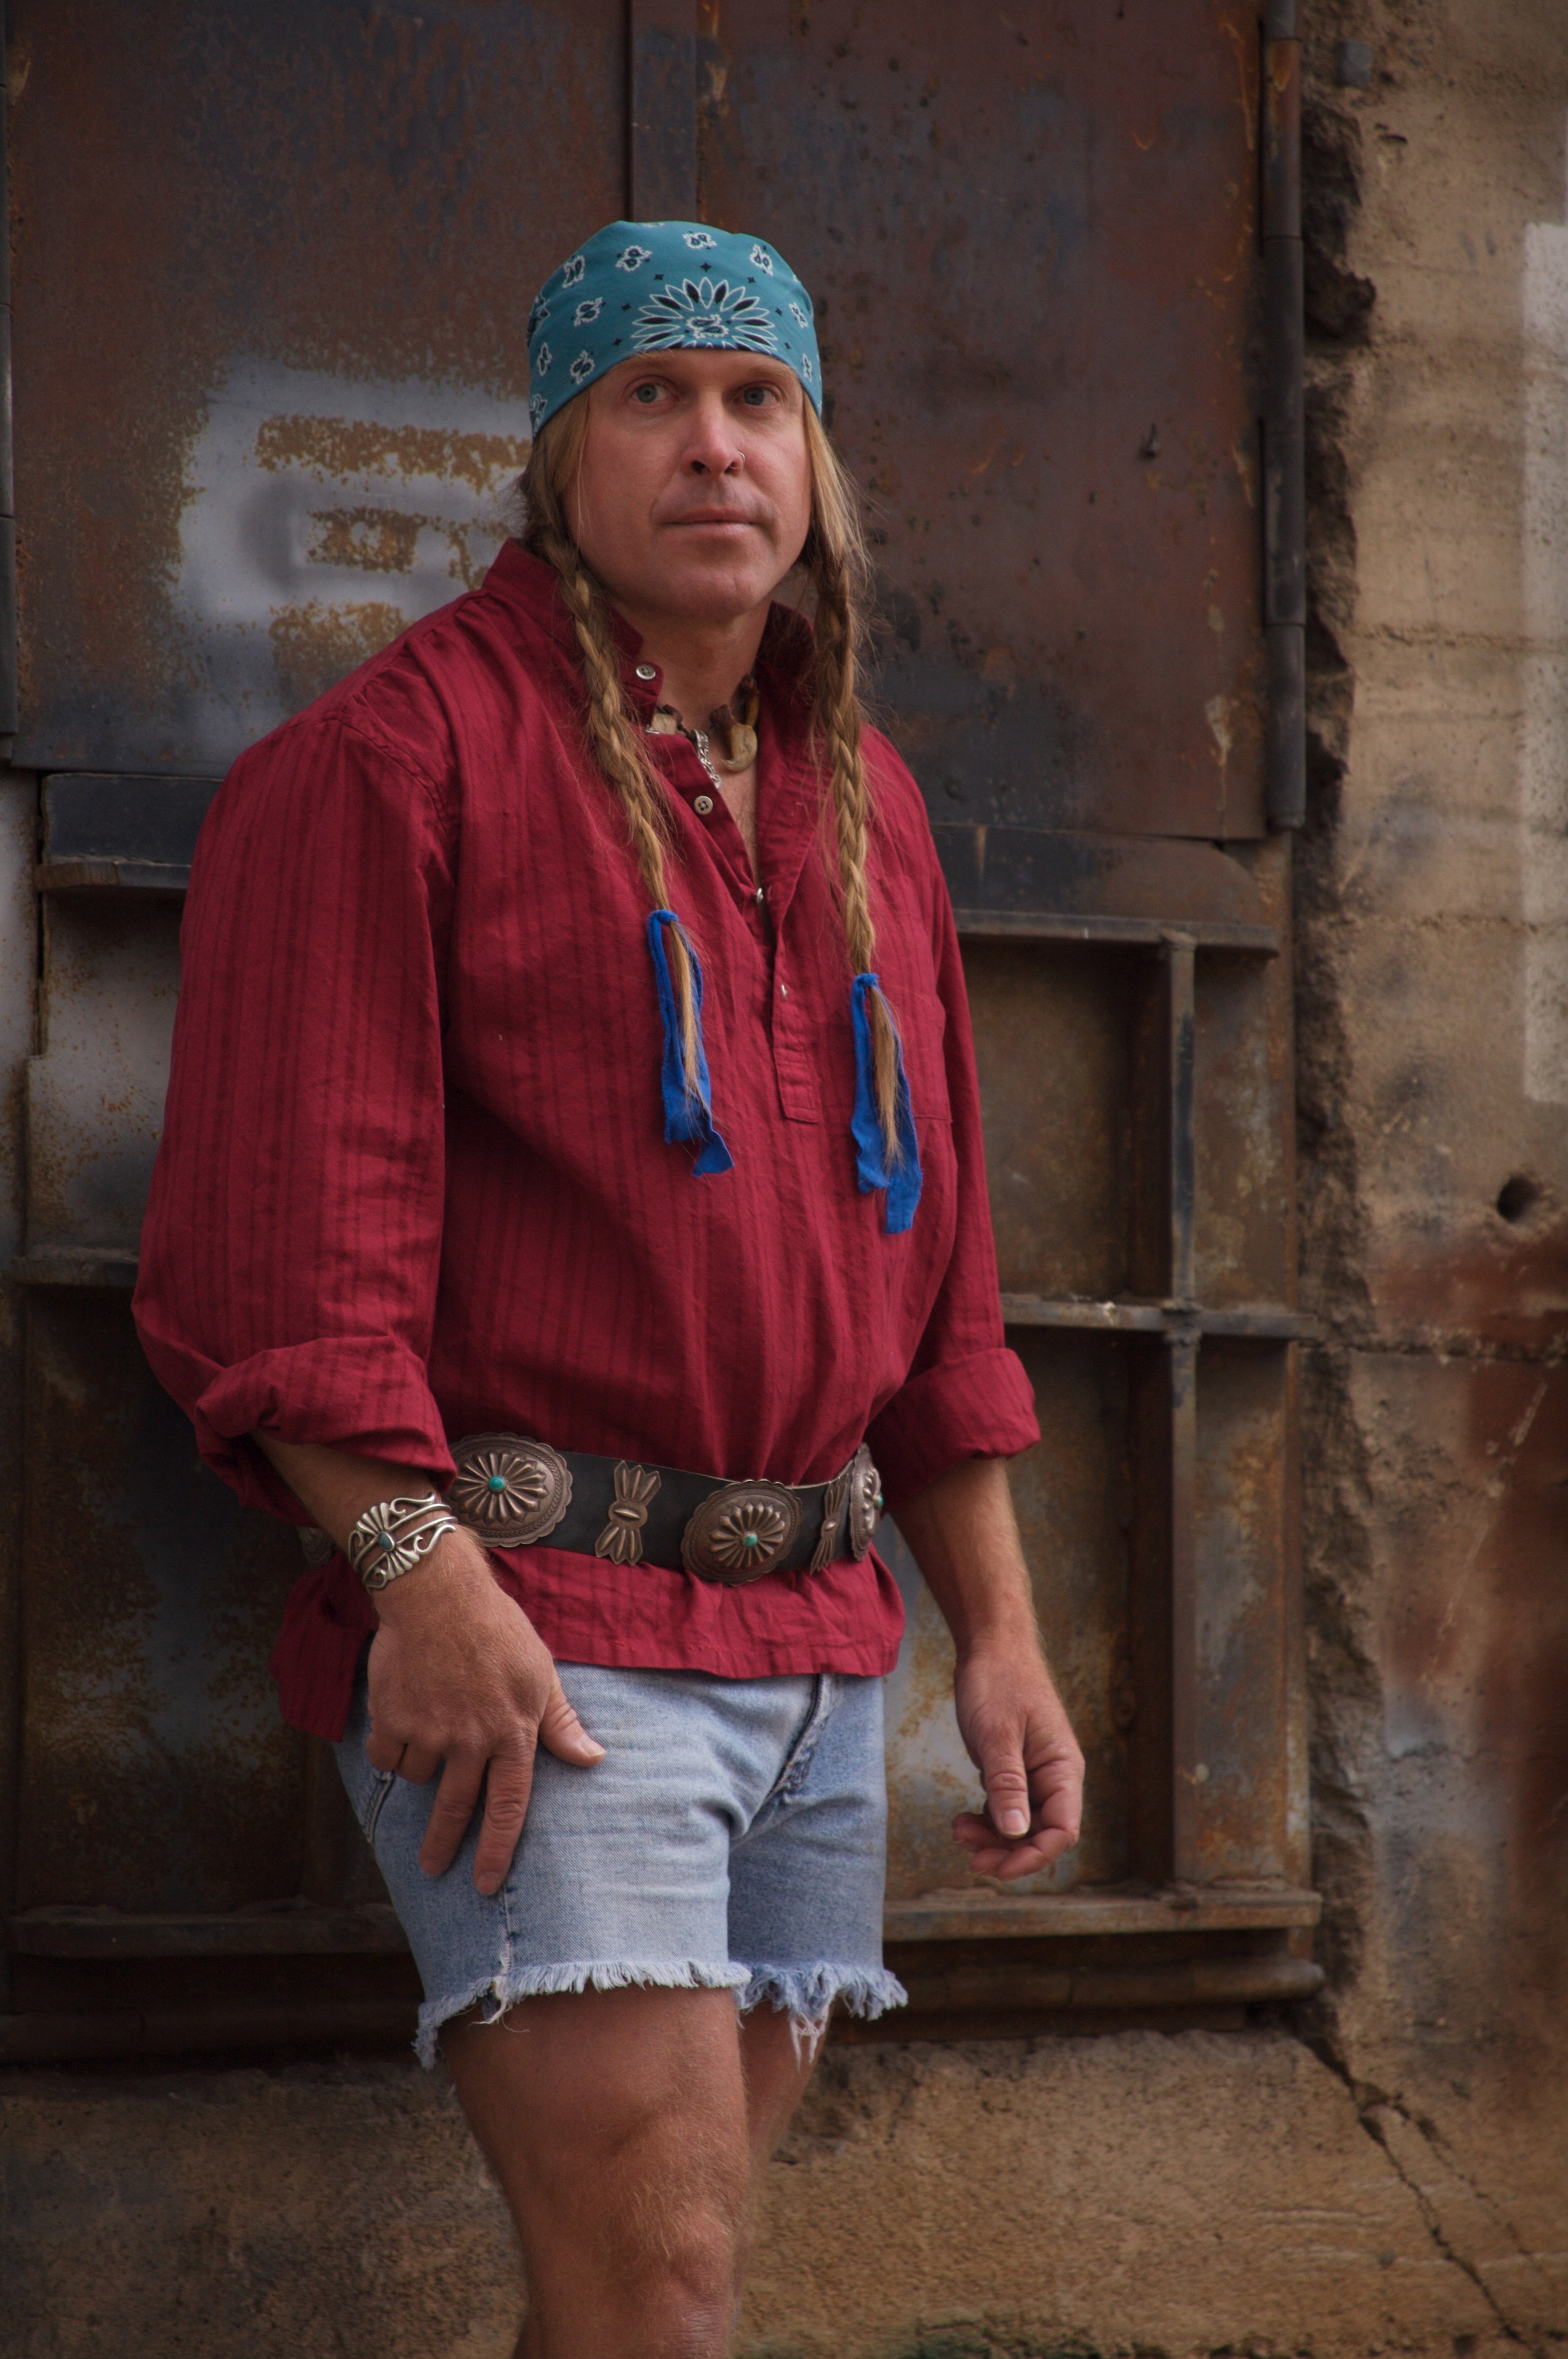 CODY LUNDIN: outdoor survival, primitive living skills, and